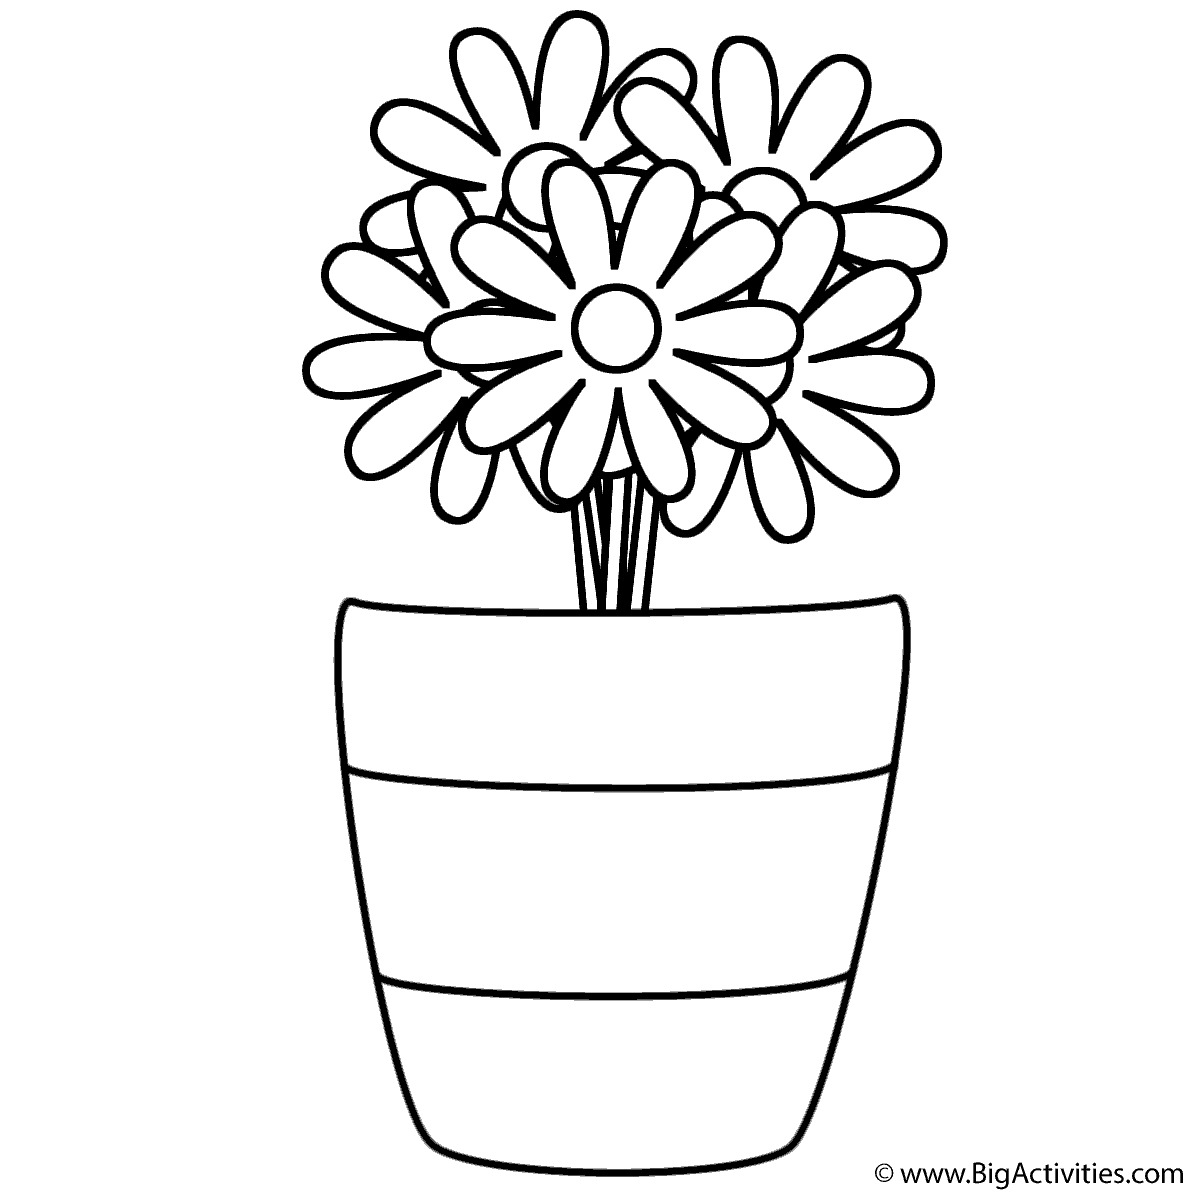 Flowers in Vase with Stripes Coloring Page Plants